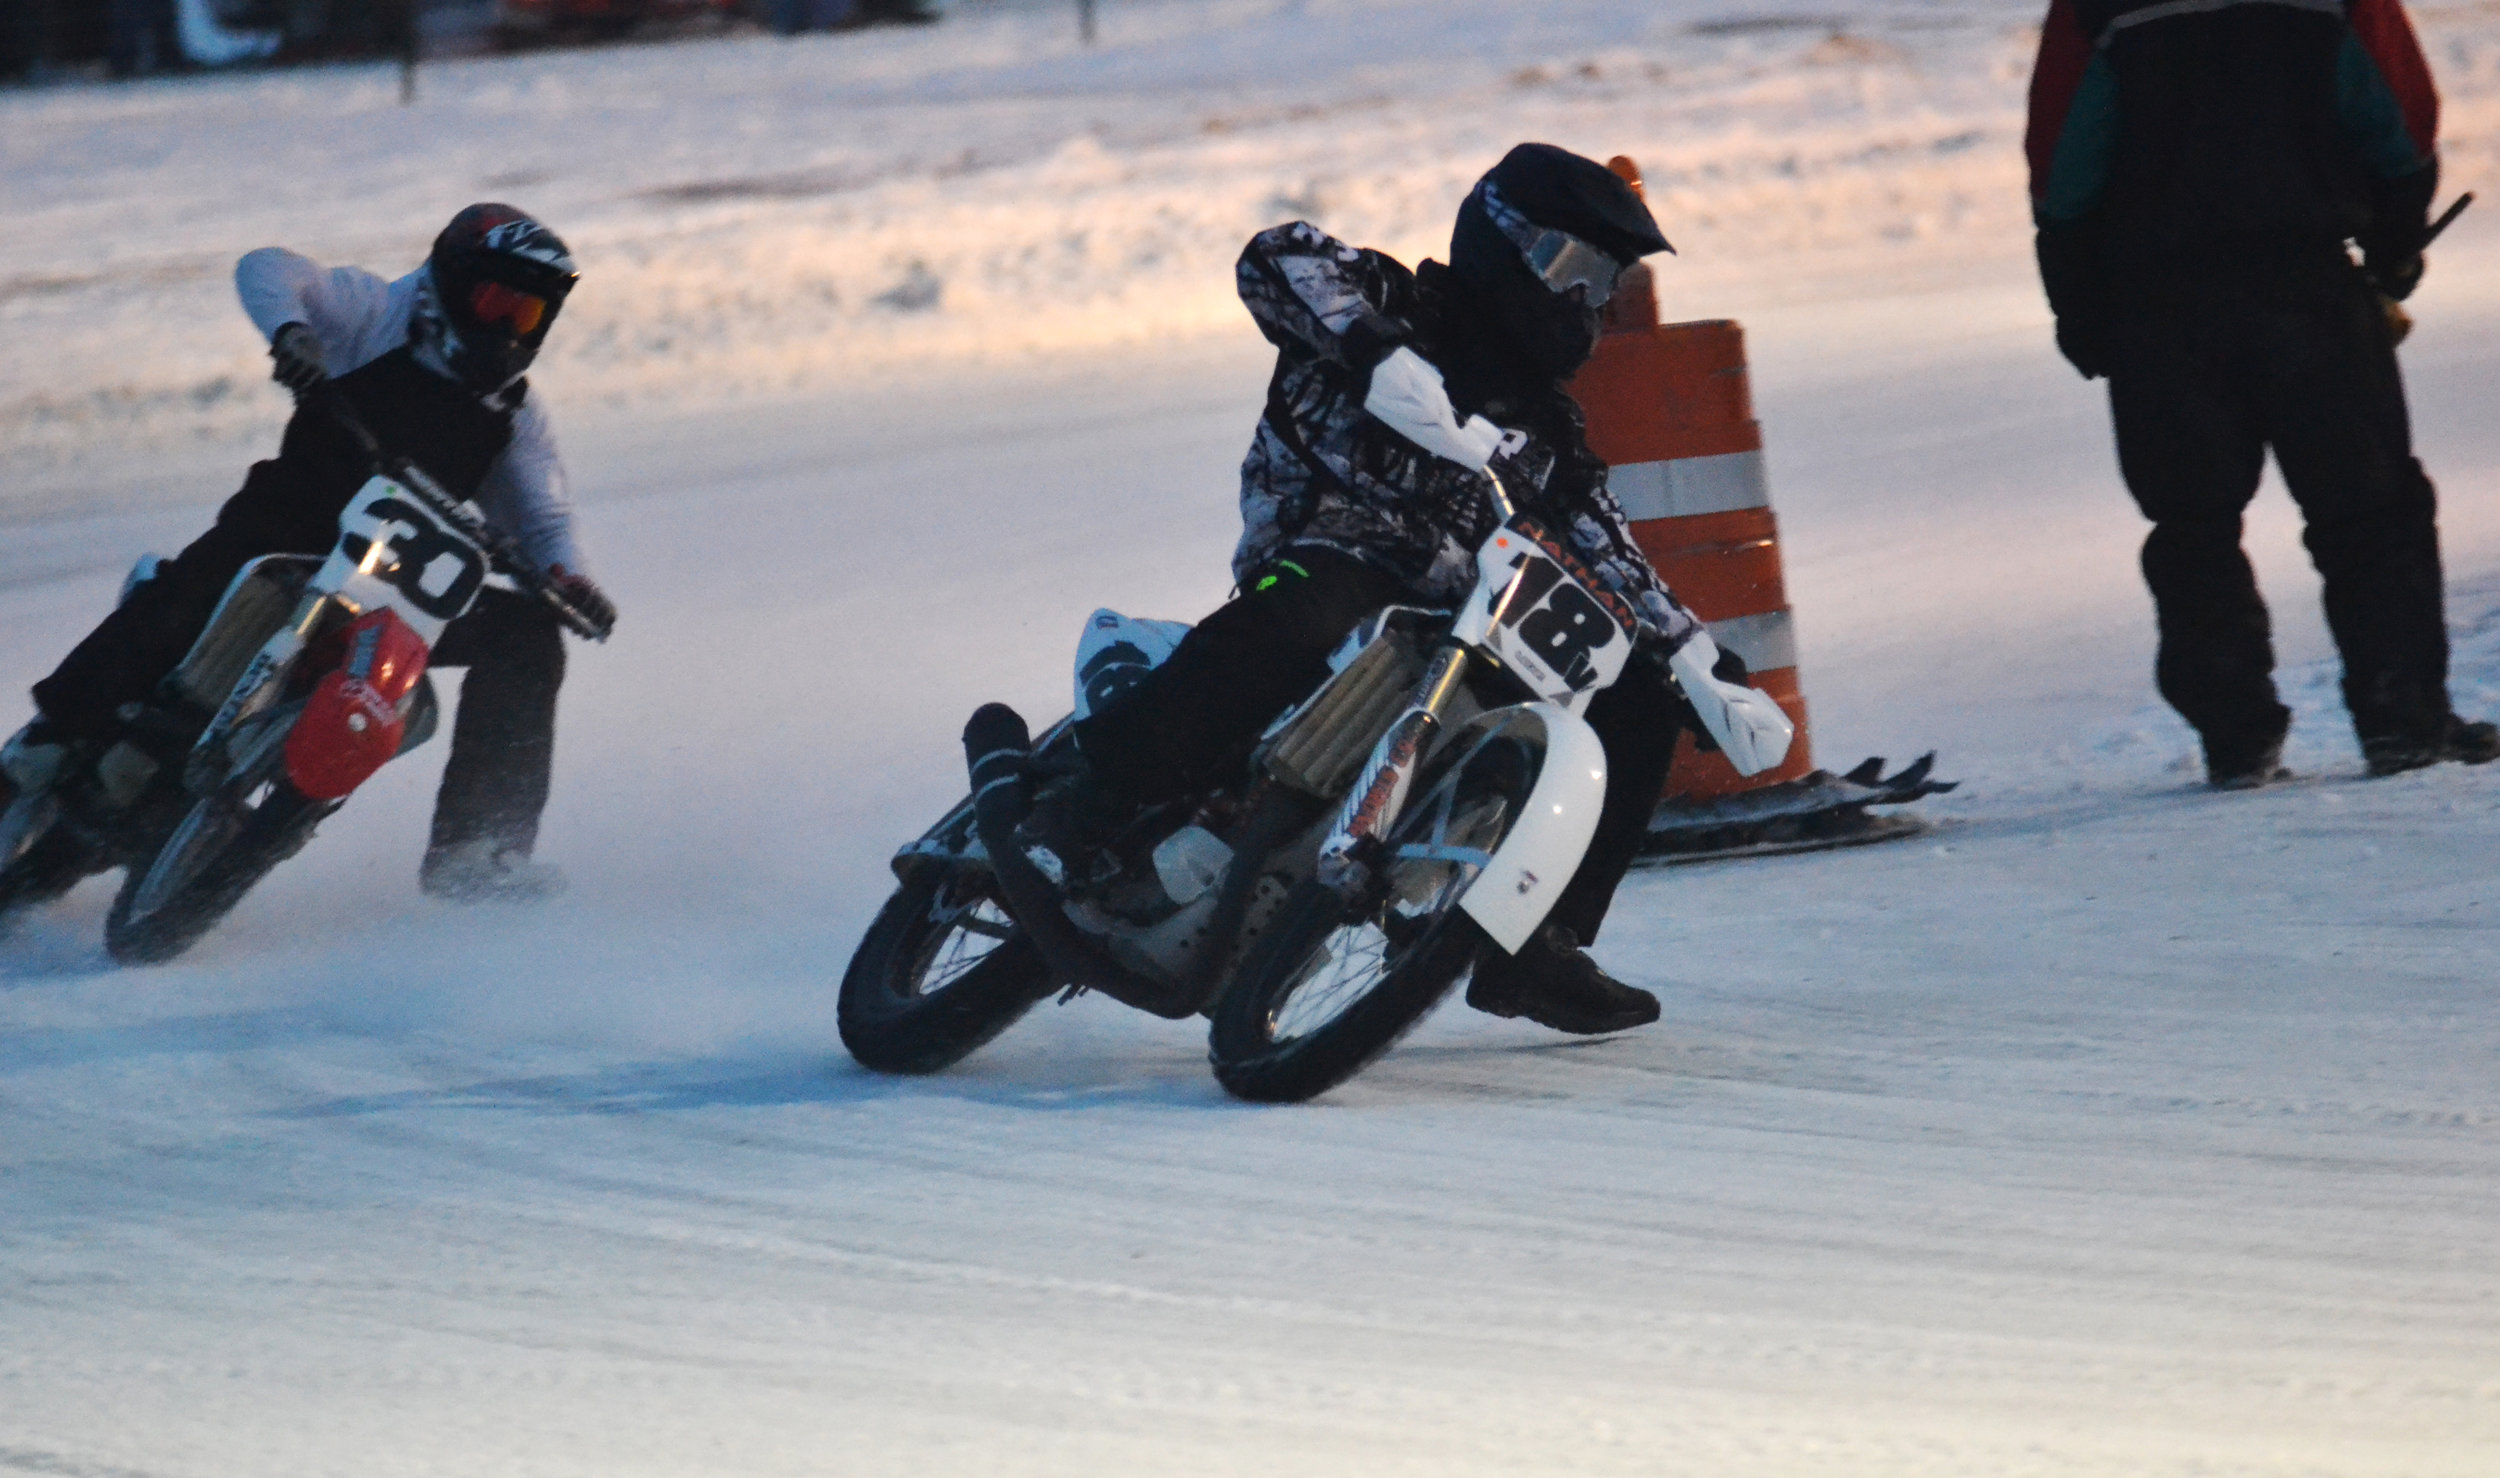 Ice Racing at MPX